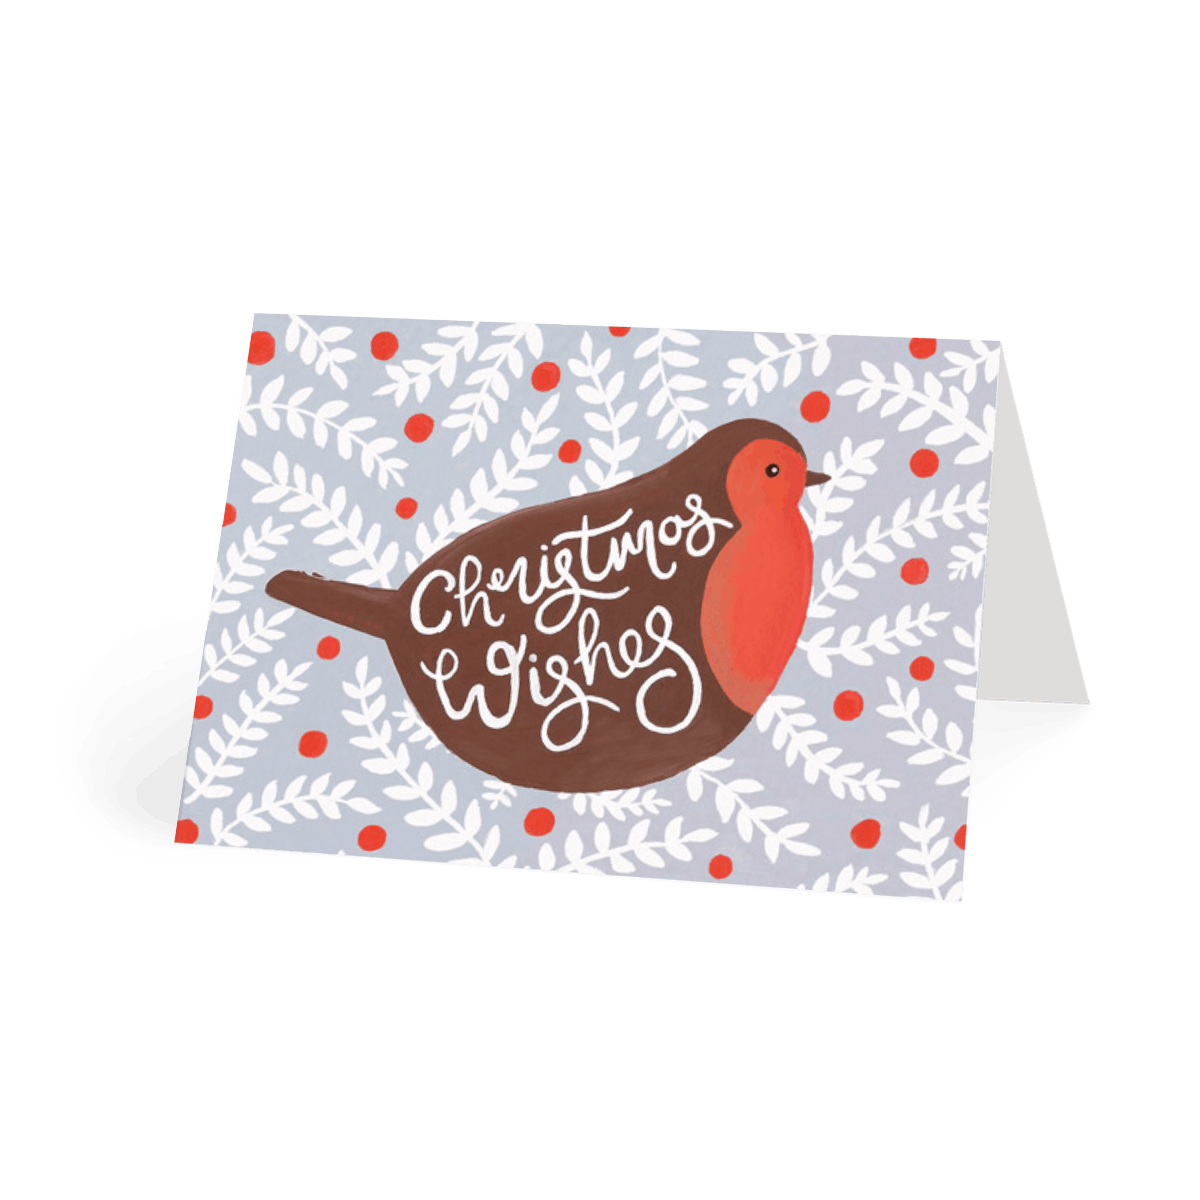 Https%3a%2f%2fwww.papier.com%2fproduct image%2f24931%2f14%2fchristmas wishes robin 6219 front 1498662376.png?ixlib=rb 1.1